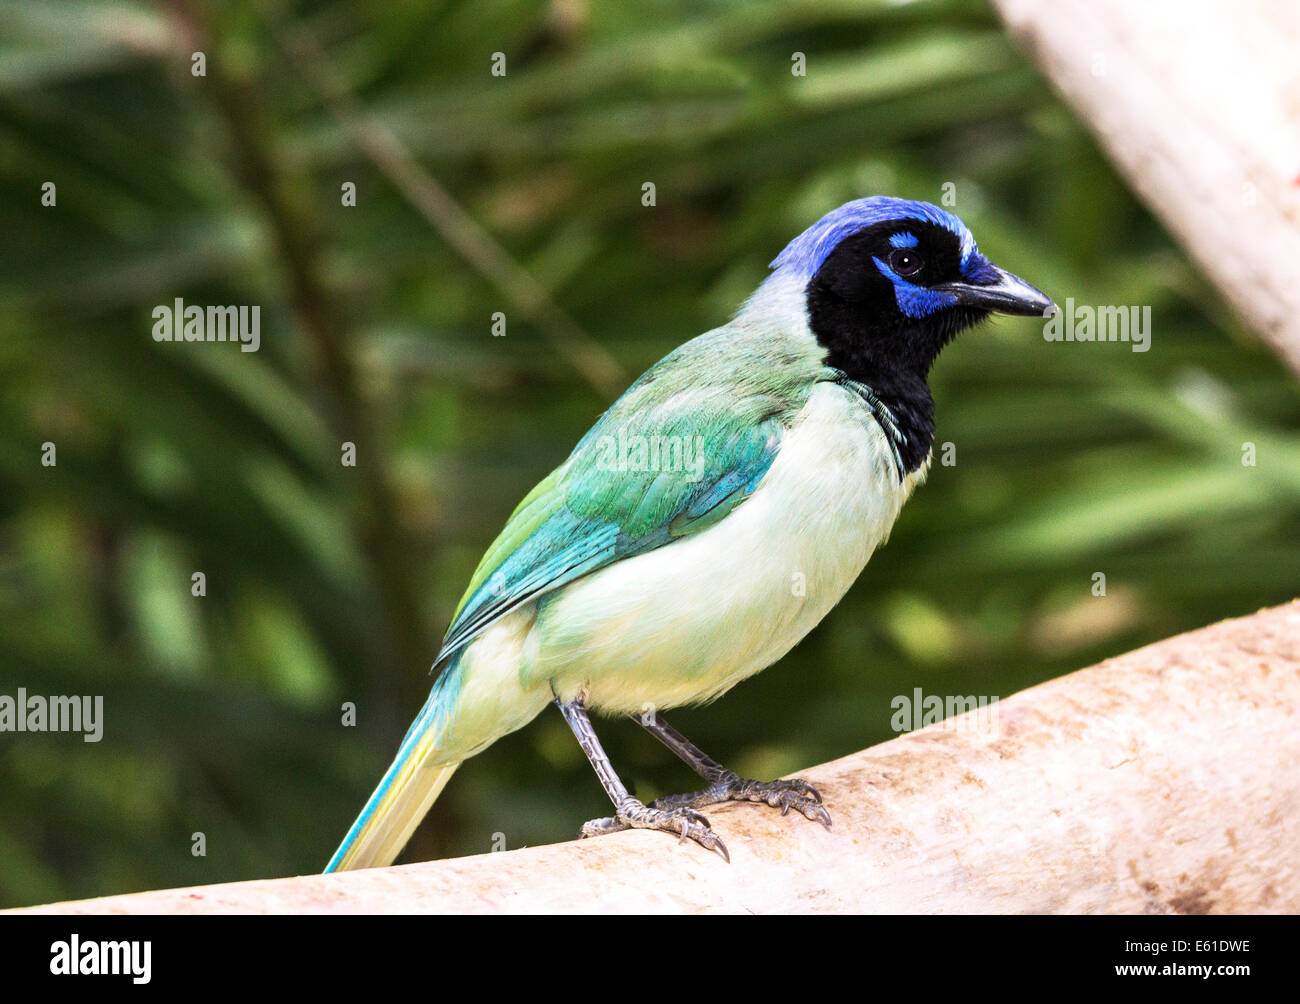 Adult Inca or Green Jay in outdoor aviary in South-west France - Stock Image